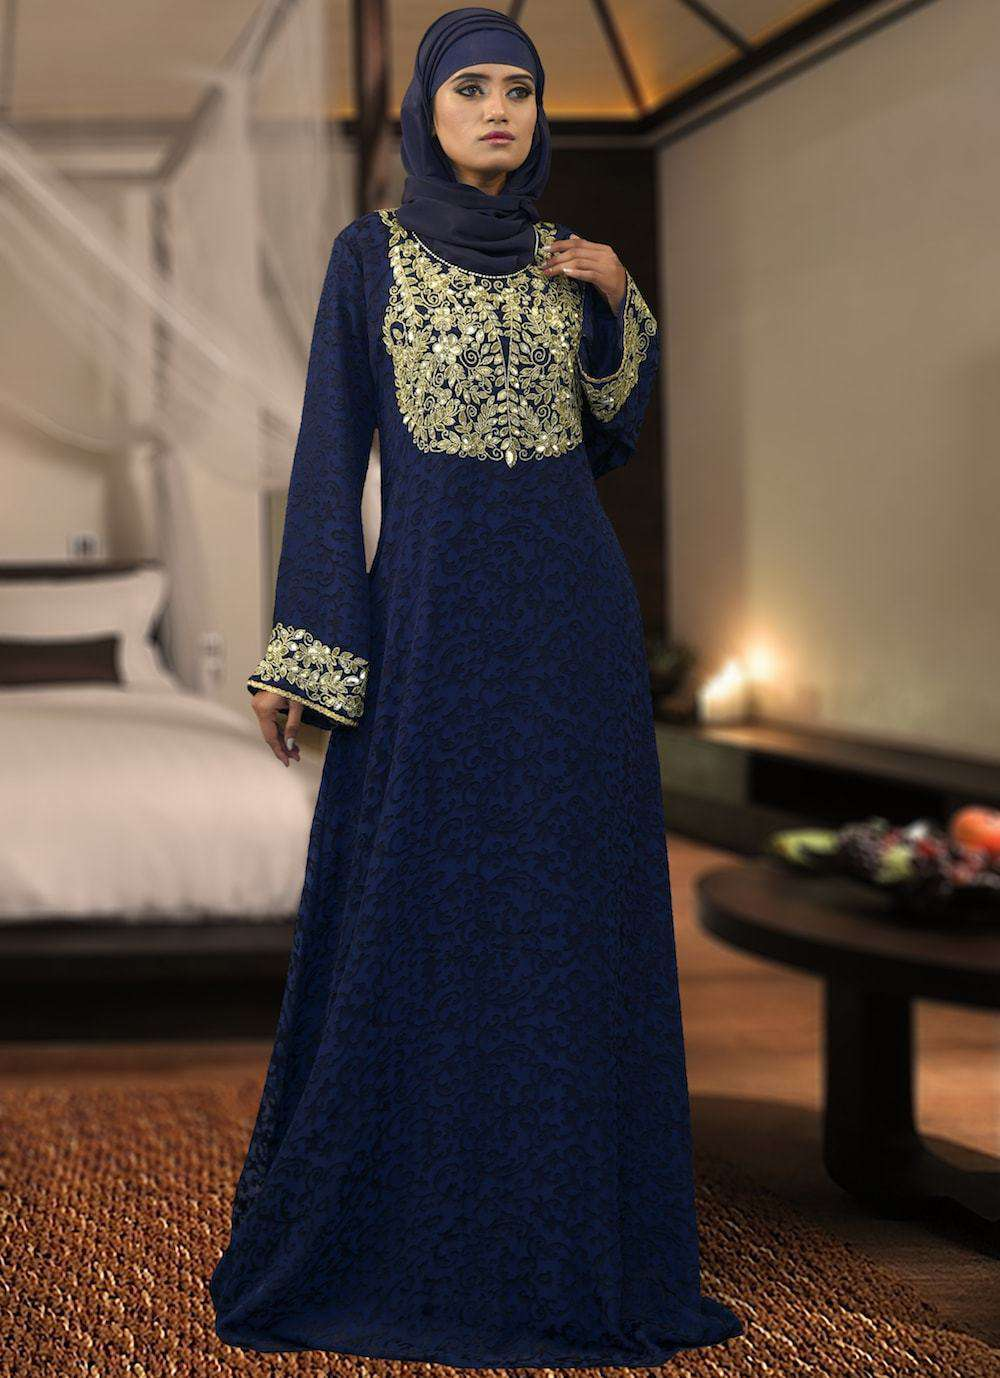 Dark Blue Arabian Style Full Sleeve Islamic Dress MYPF1335